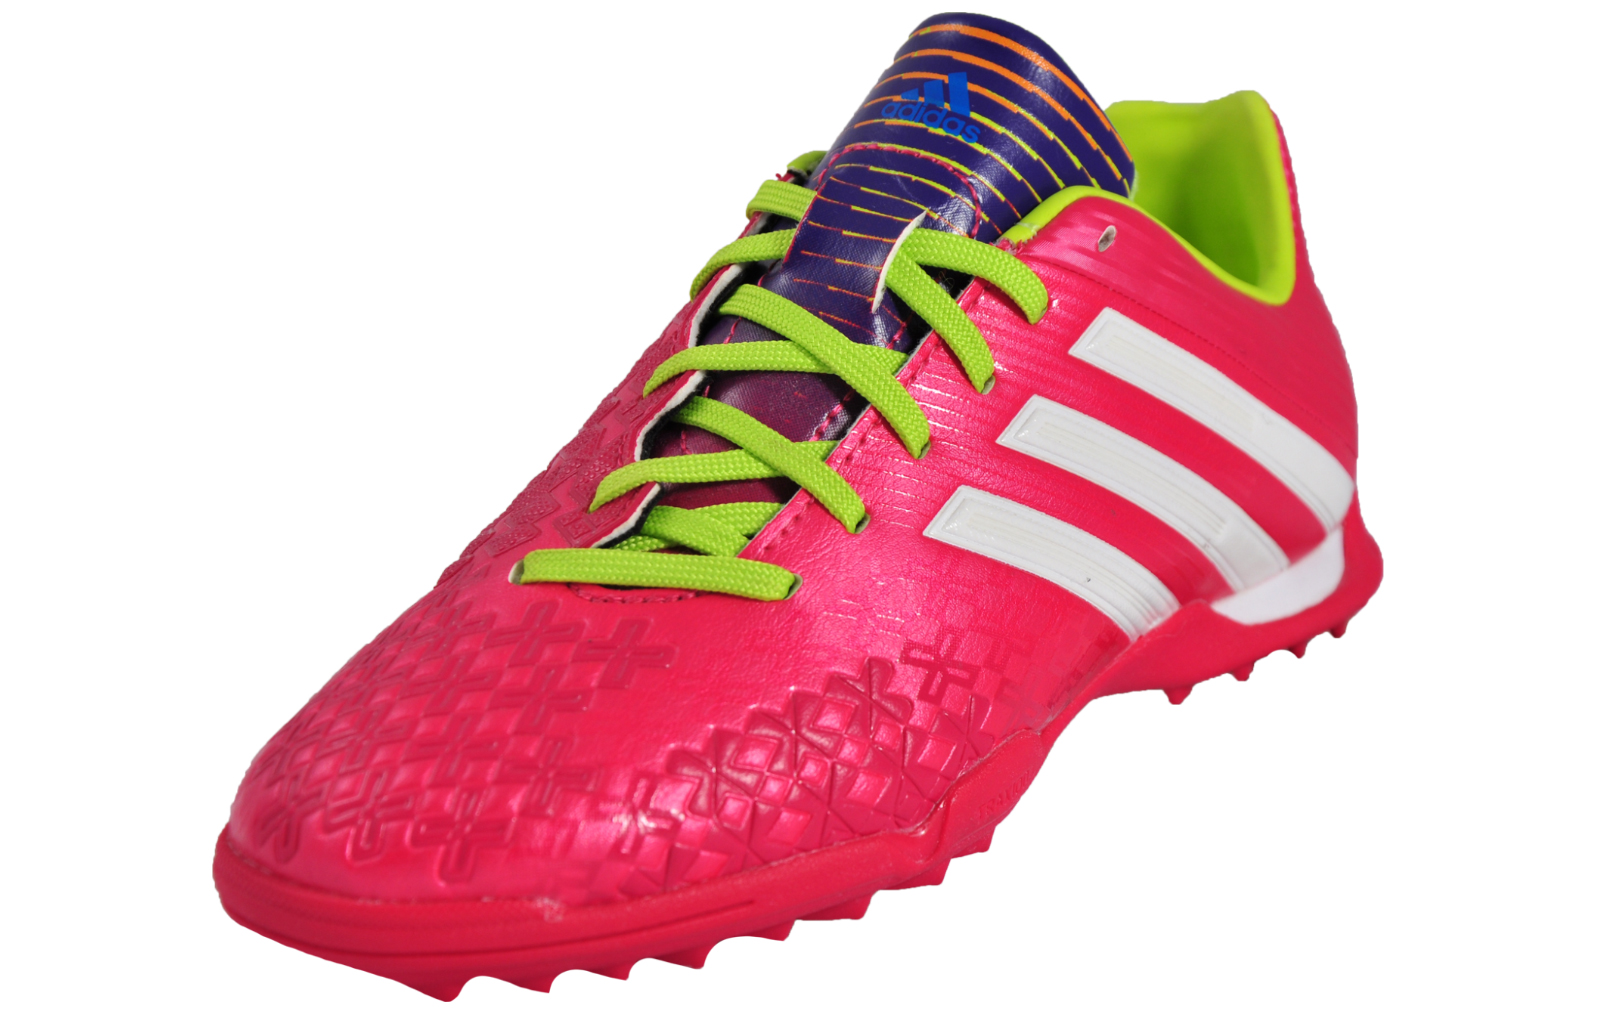 Adidas Predator Absolado LZ TRX TF Junior - AD186197P